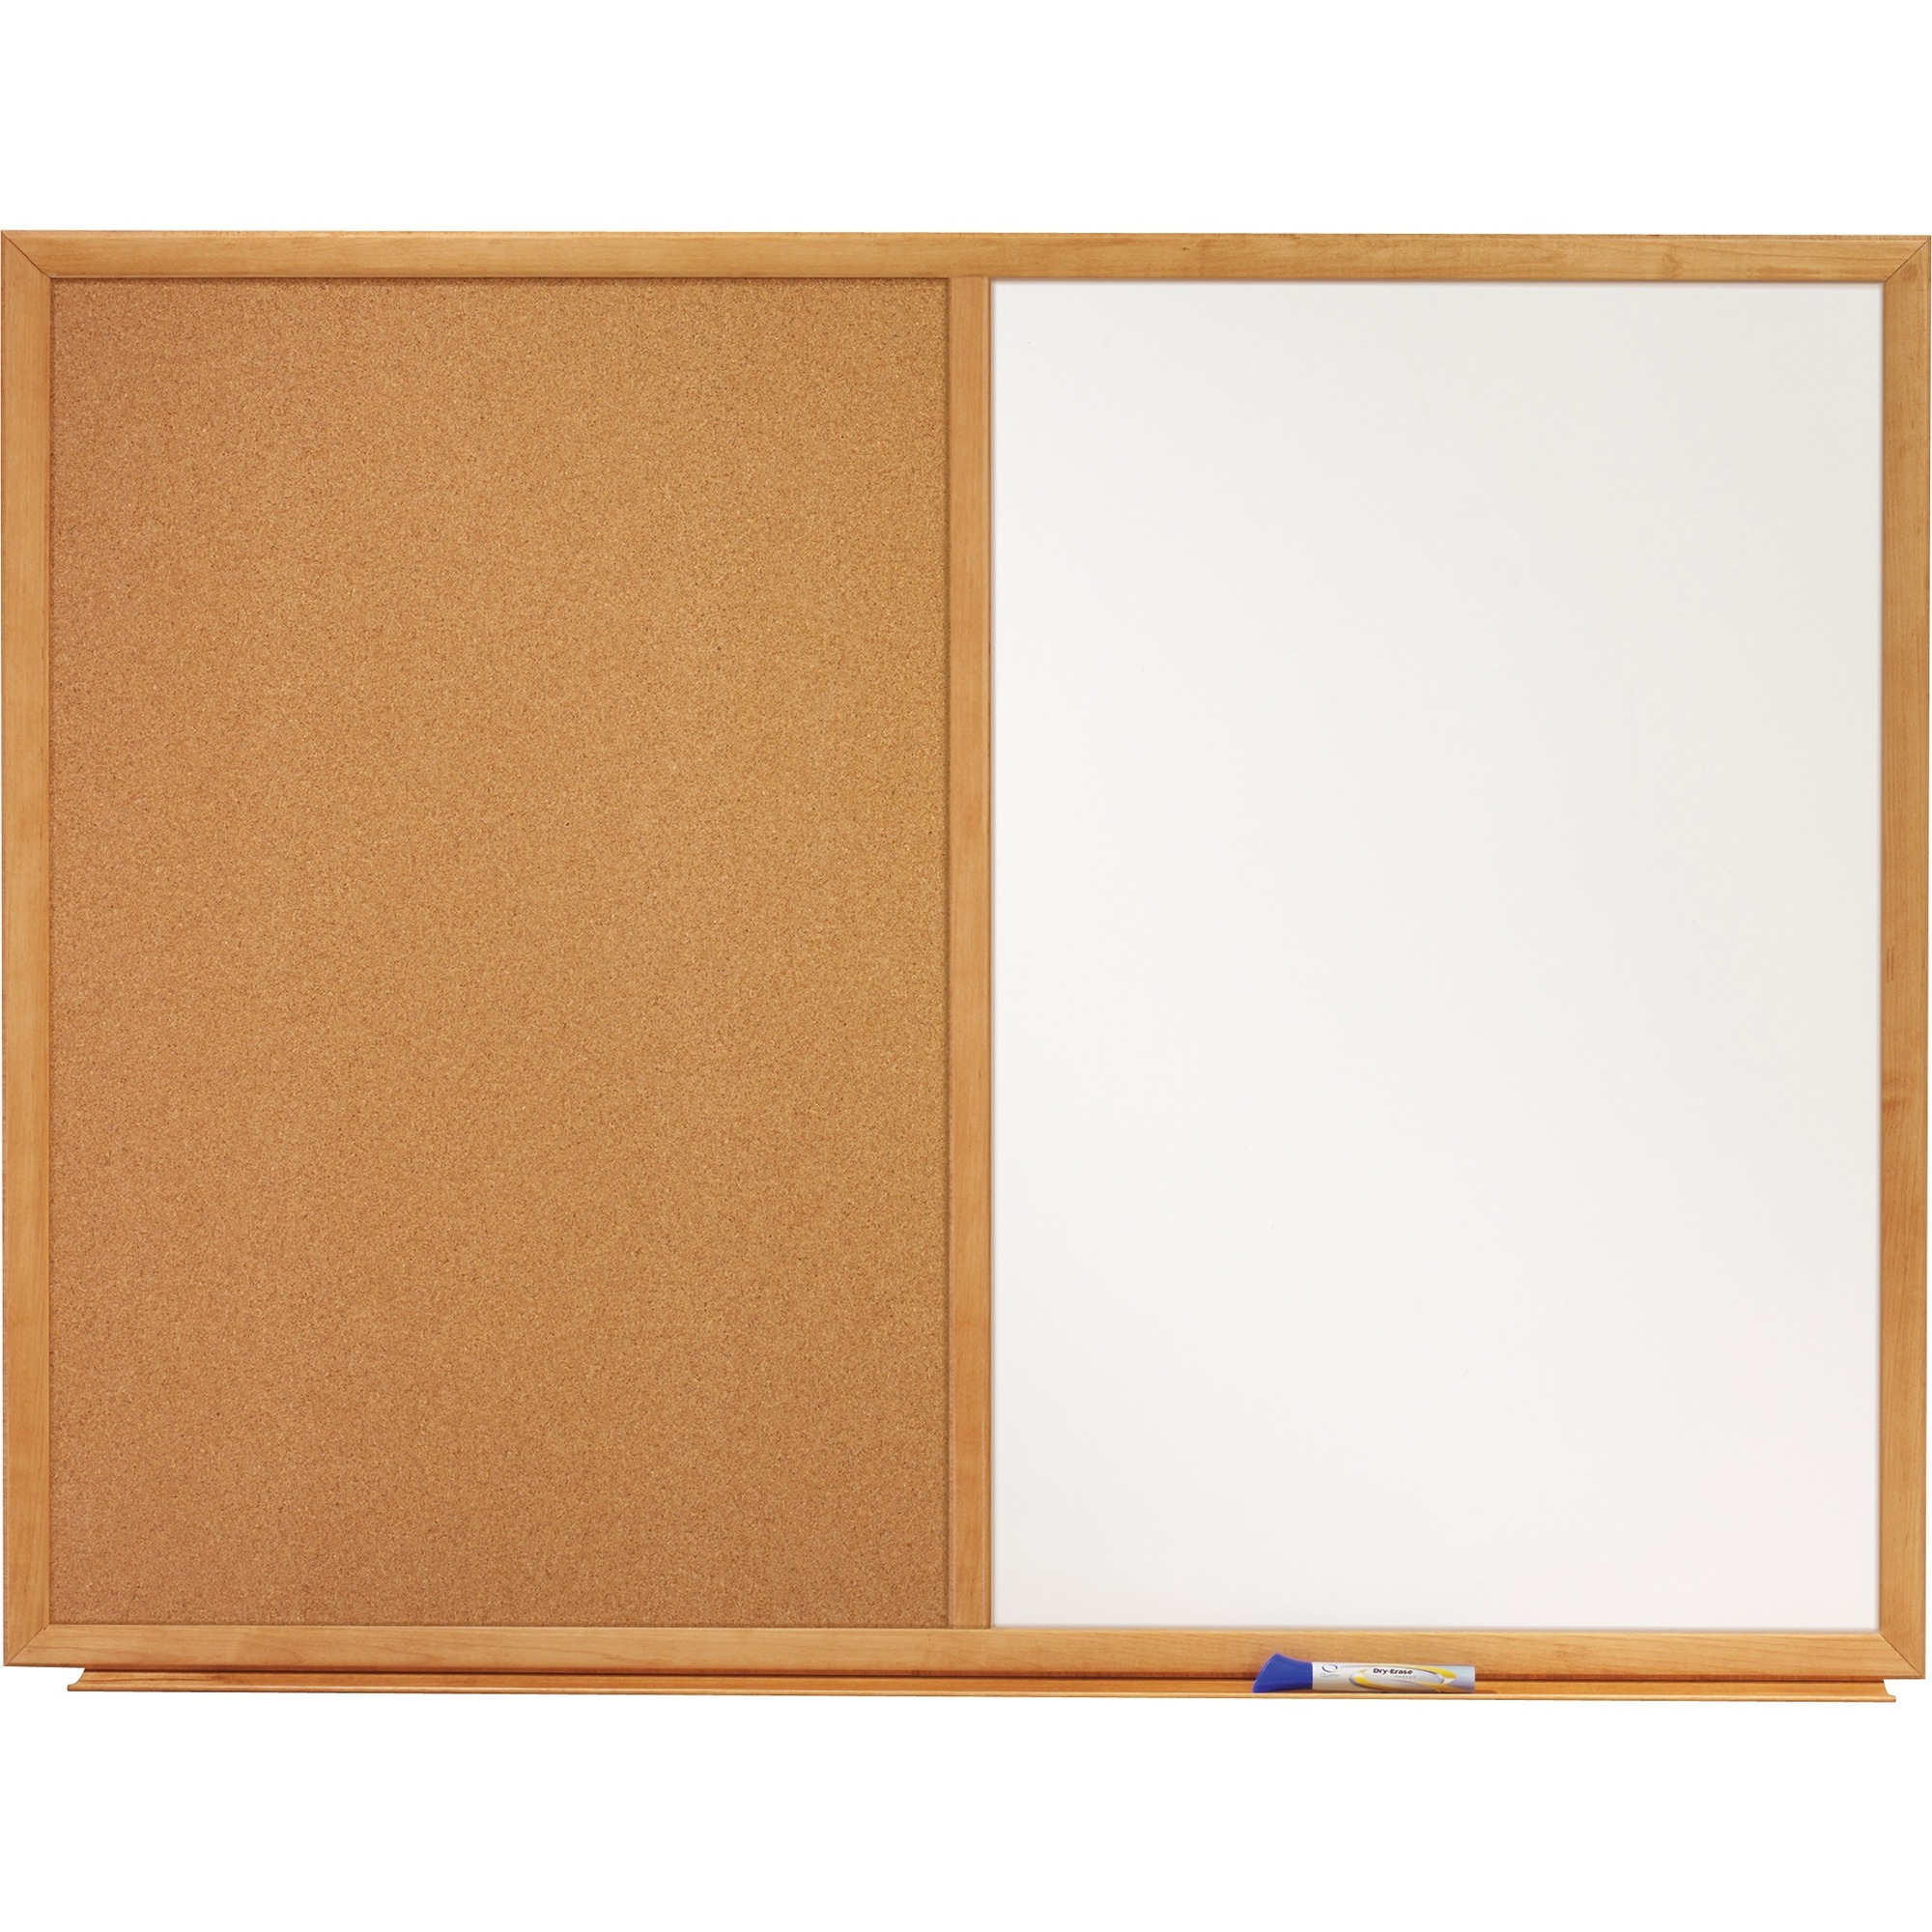 Acco Brands Corporation Quartet® Standard Combination Whiteboared/cork Bulletin Board, 4 X 3, Oak Finish Frame - 48 (4 Ft) Width X 36 (3 Ft) Height - White Melamine Surface - Oak Frame - Rectangle - Horizontal/vertical - 1 / Each